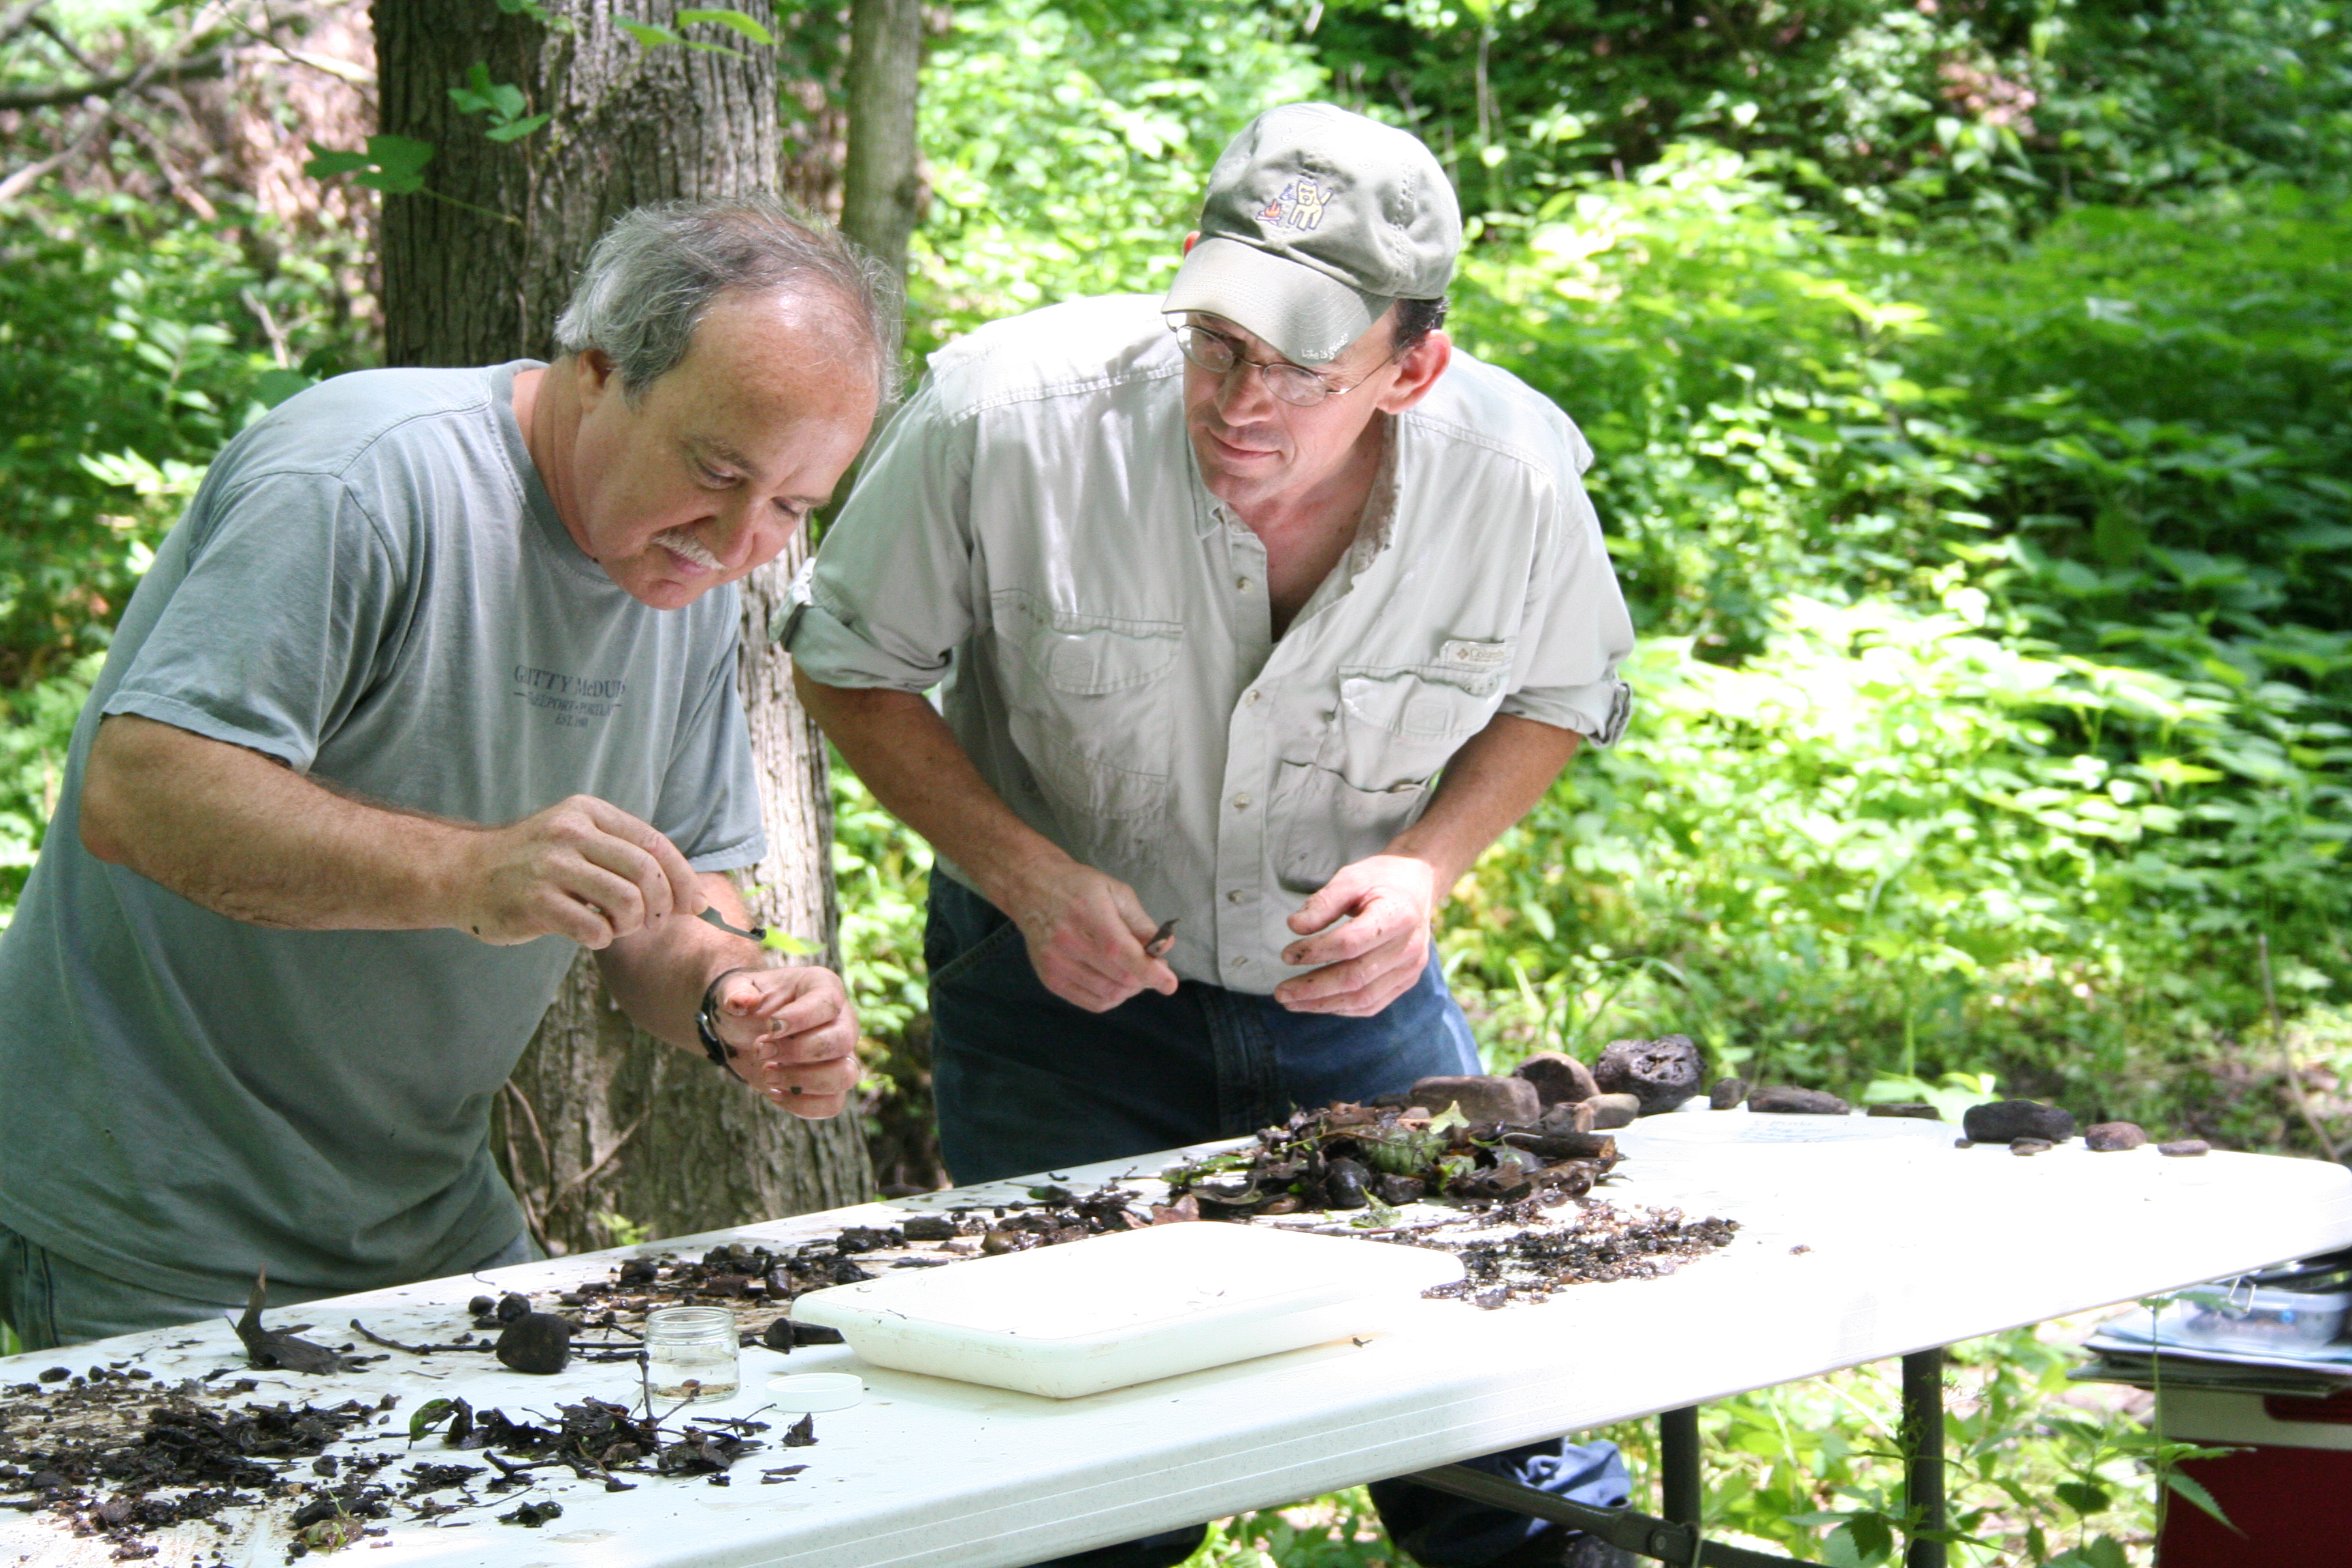 Scott and Bruce collect invertebrates during invertebrate